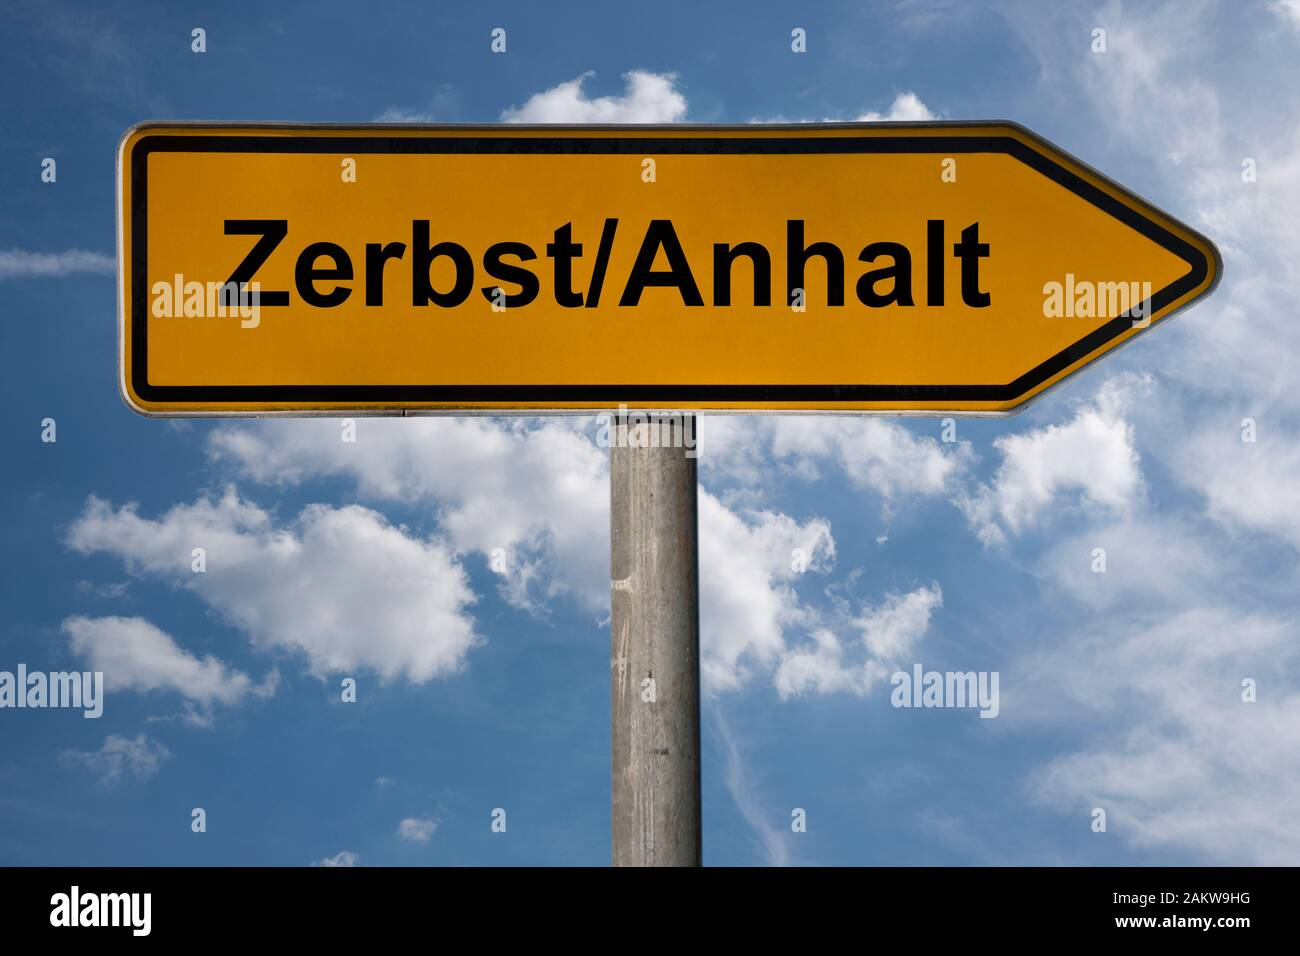 Detail photo of a signpost with the inscription Zerbst/Anhalt, Saxony-Anhalt, Germany, Europe Stock Photo